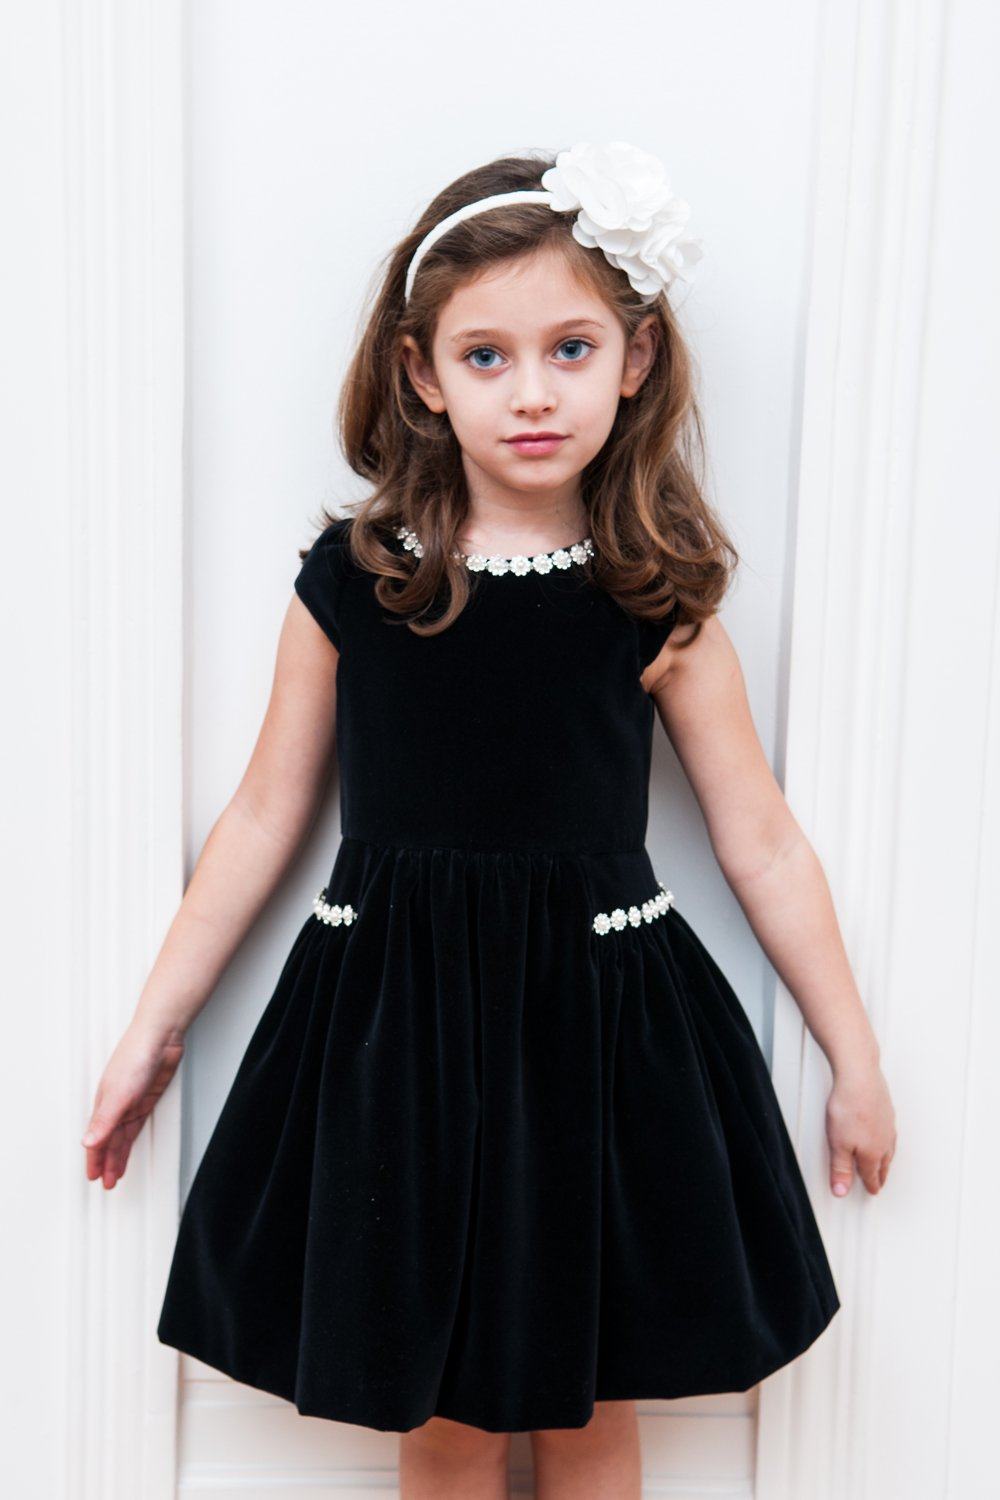 Pretty plaid makes this velvet dress the perfect addition to your little angel's wardrobe. The side bow detail taffeta skirt and sparkle overlay will keep her twirling through a Christmas party with cute confidence that everyone will love.